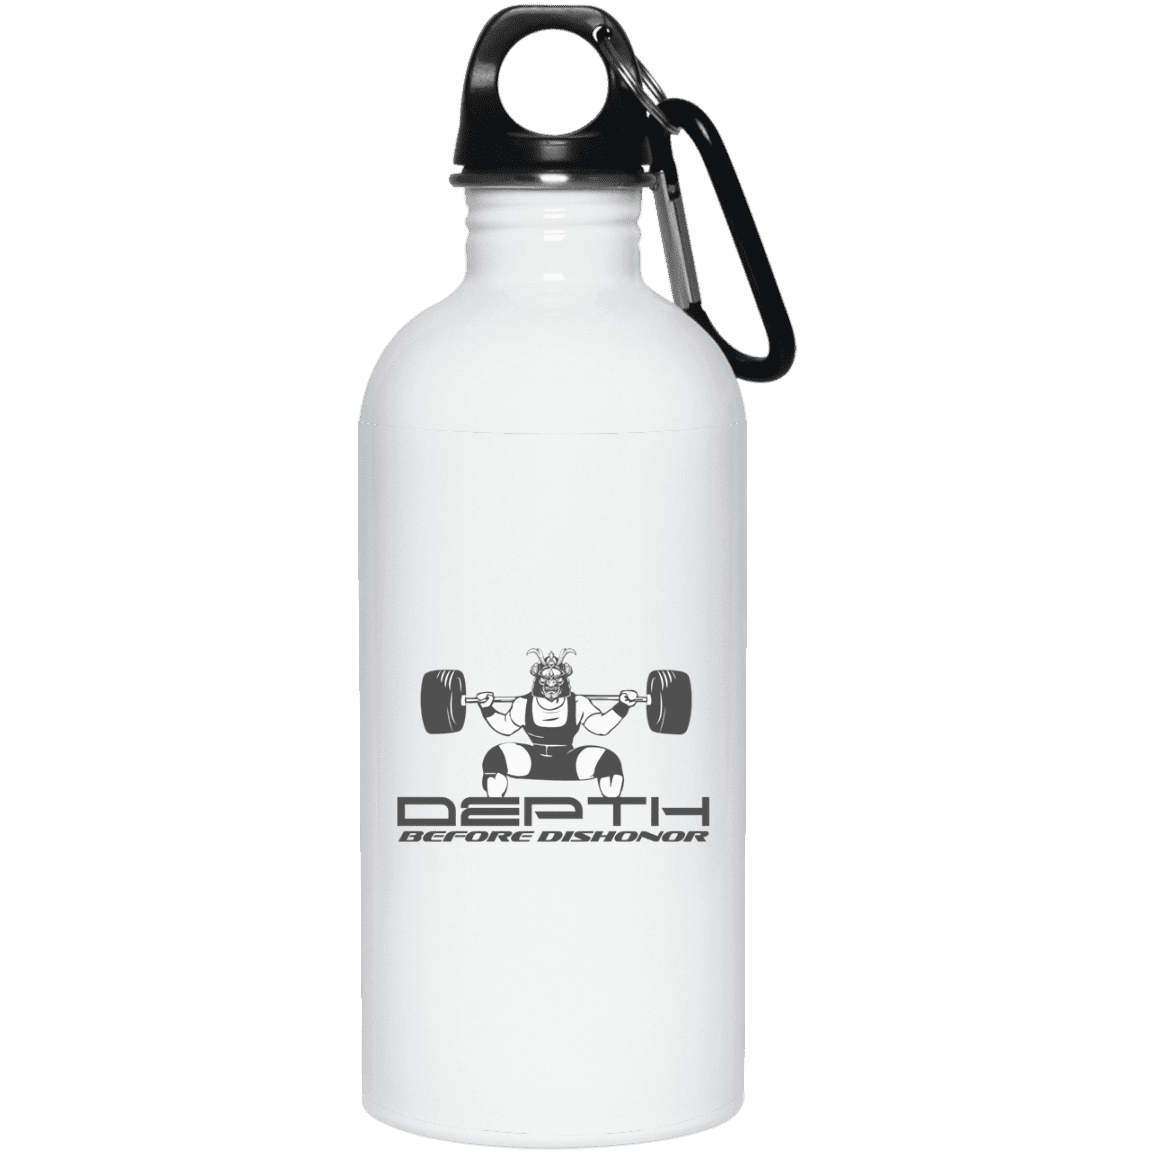 Drinkware 20oz Depth Before Dishonor Water Bottle